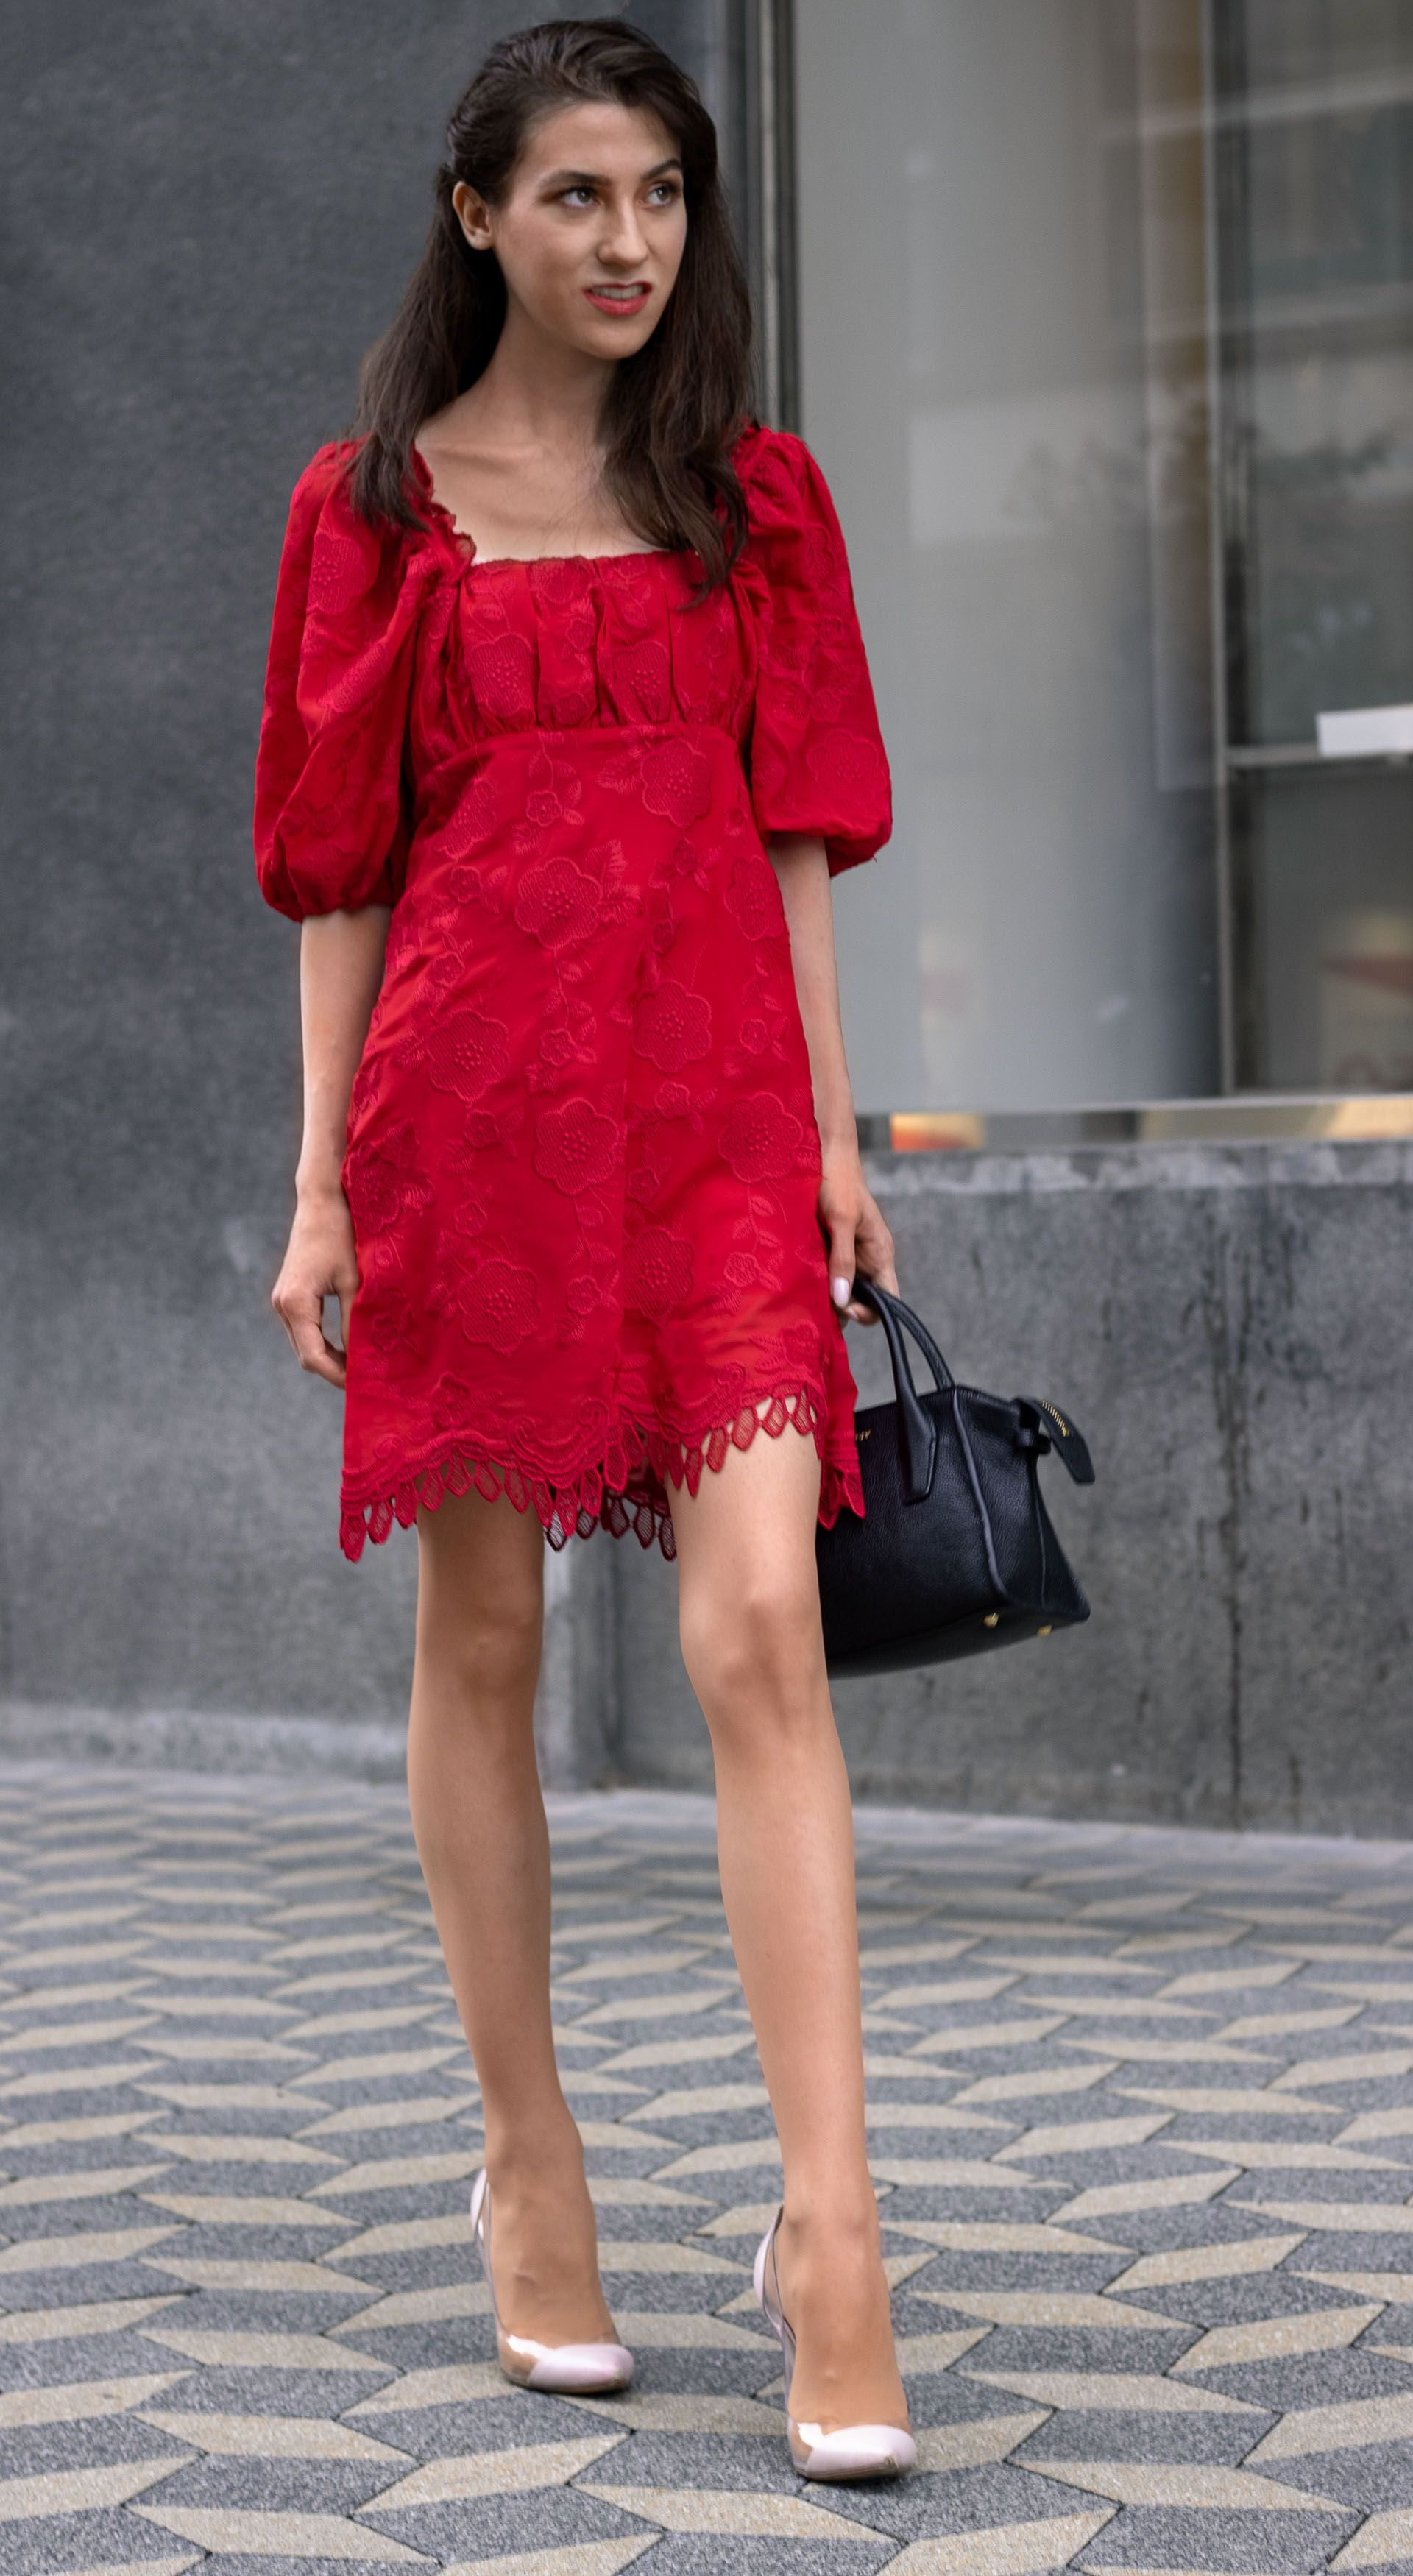 Dress To Wear For Annual Business Party In Fall Brunette From Wall Street Fashion Party Fashion London Fashion Bloggers [ 3500 x 1920 Pixel ]